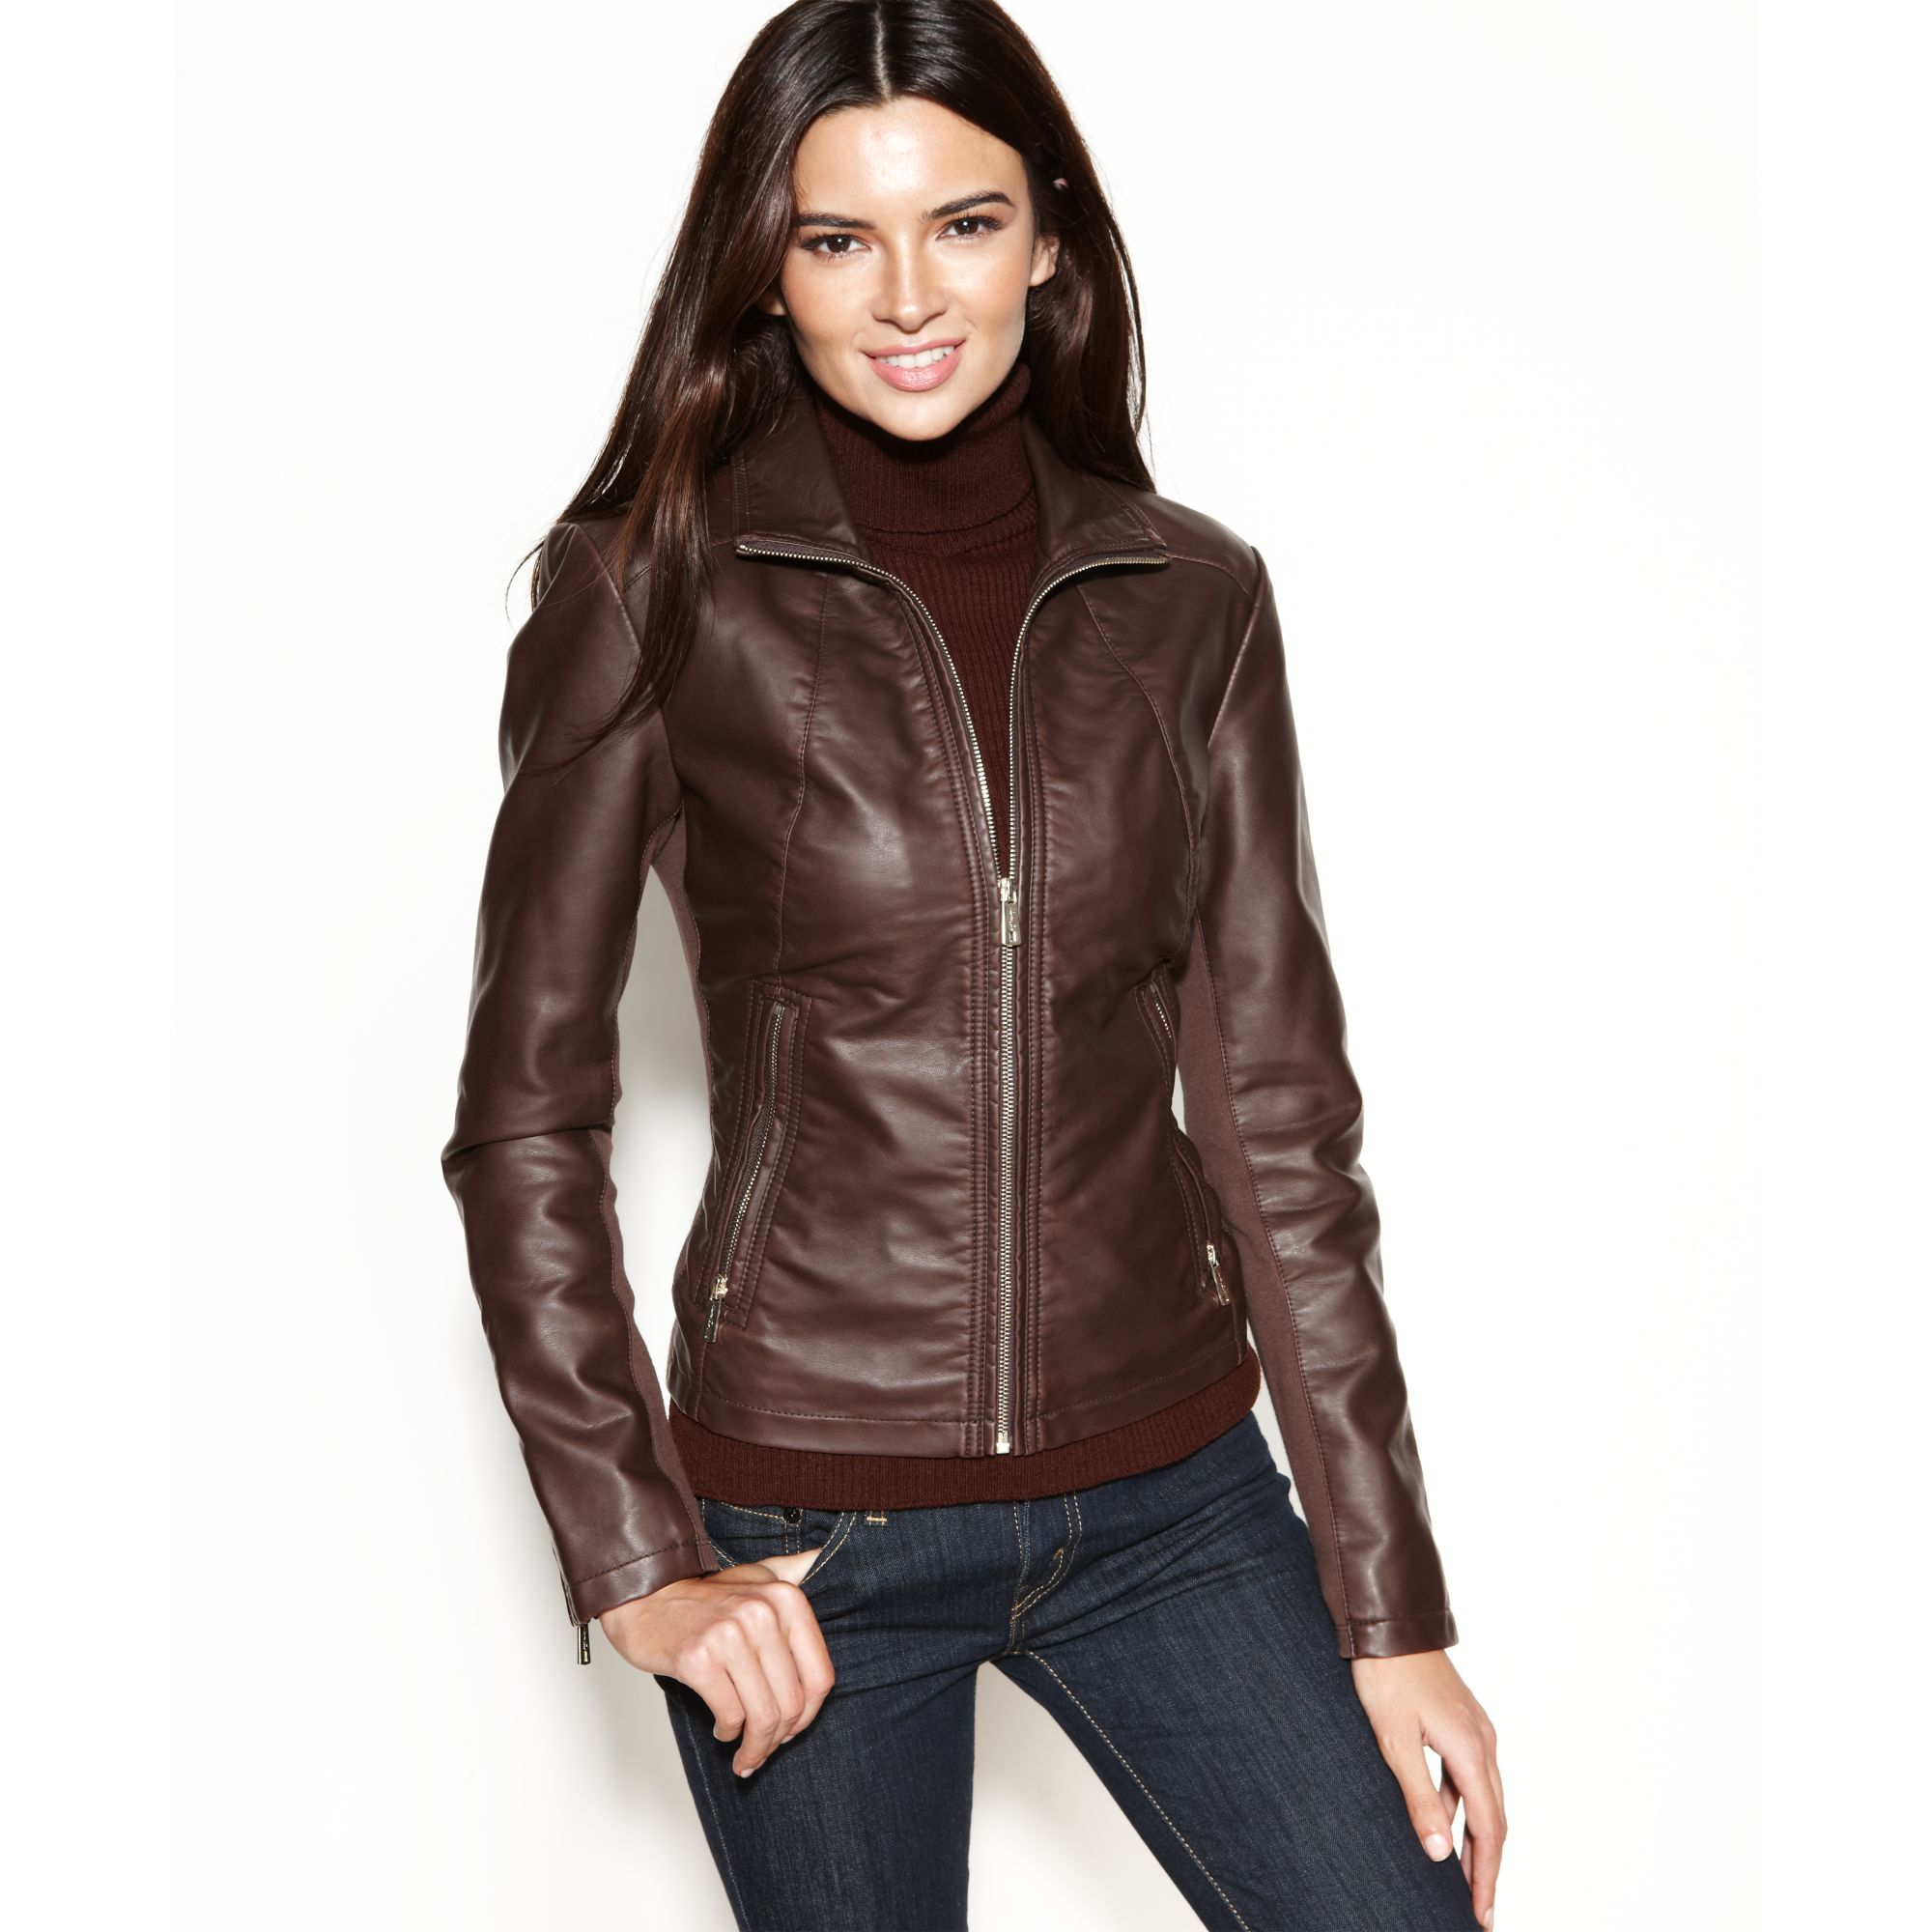 Lyst - Kenneth cole reaction Faux-leather Zippered-cuff Jacket in ...